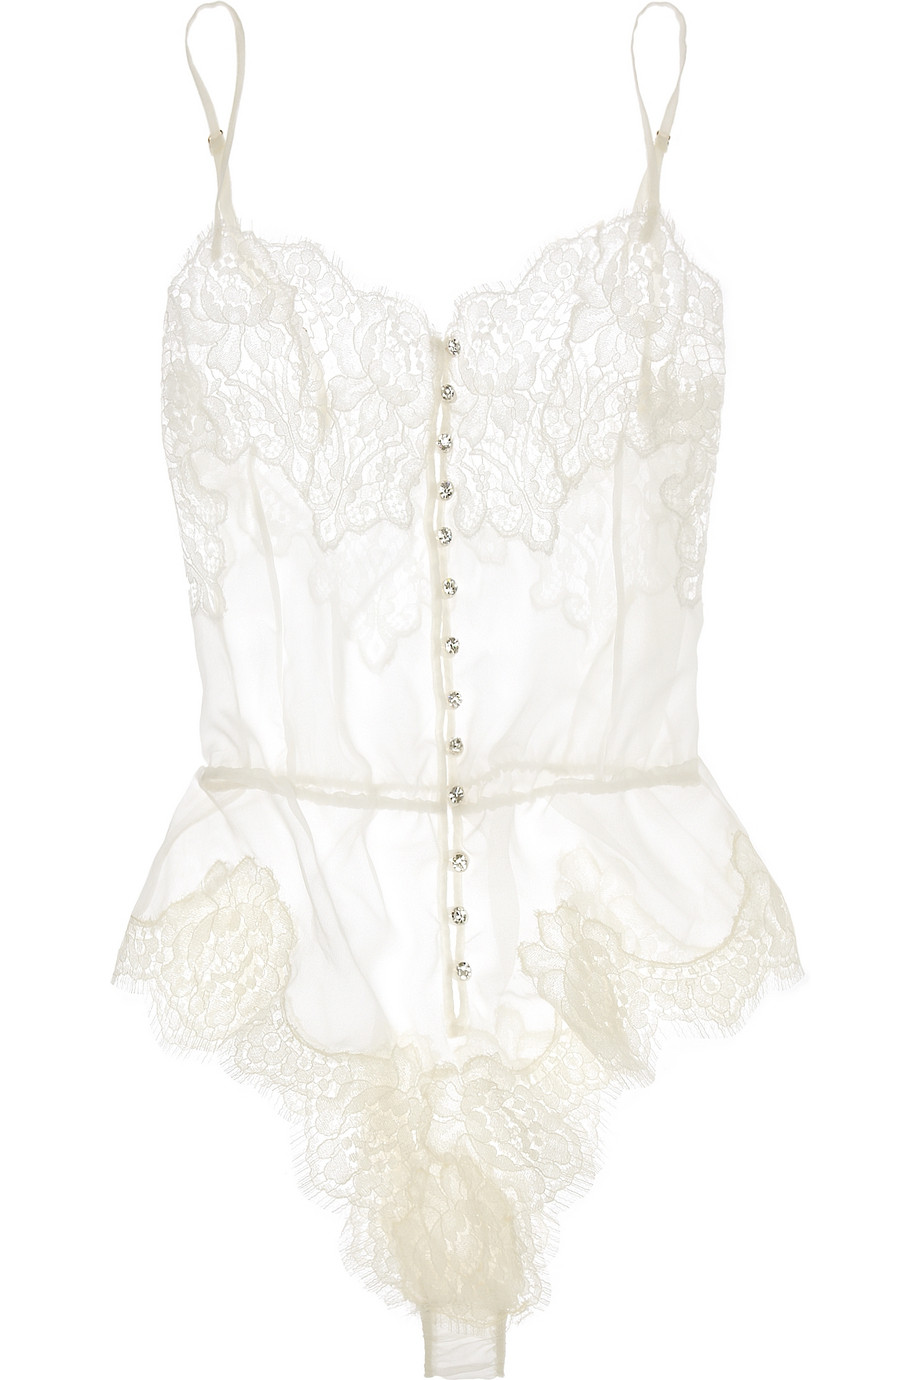 Georgette and chantilly lace bodysuit